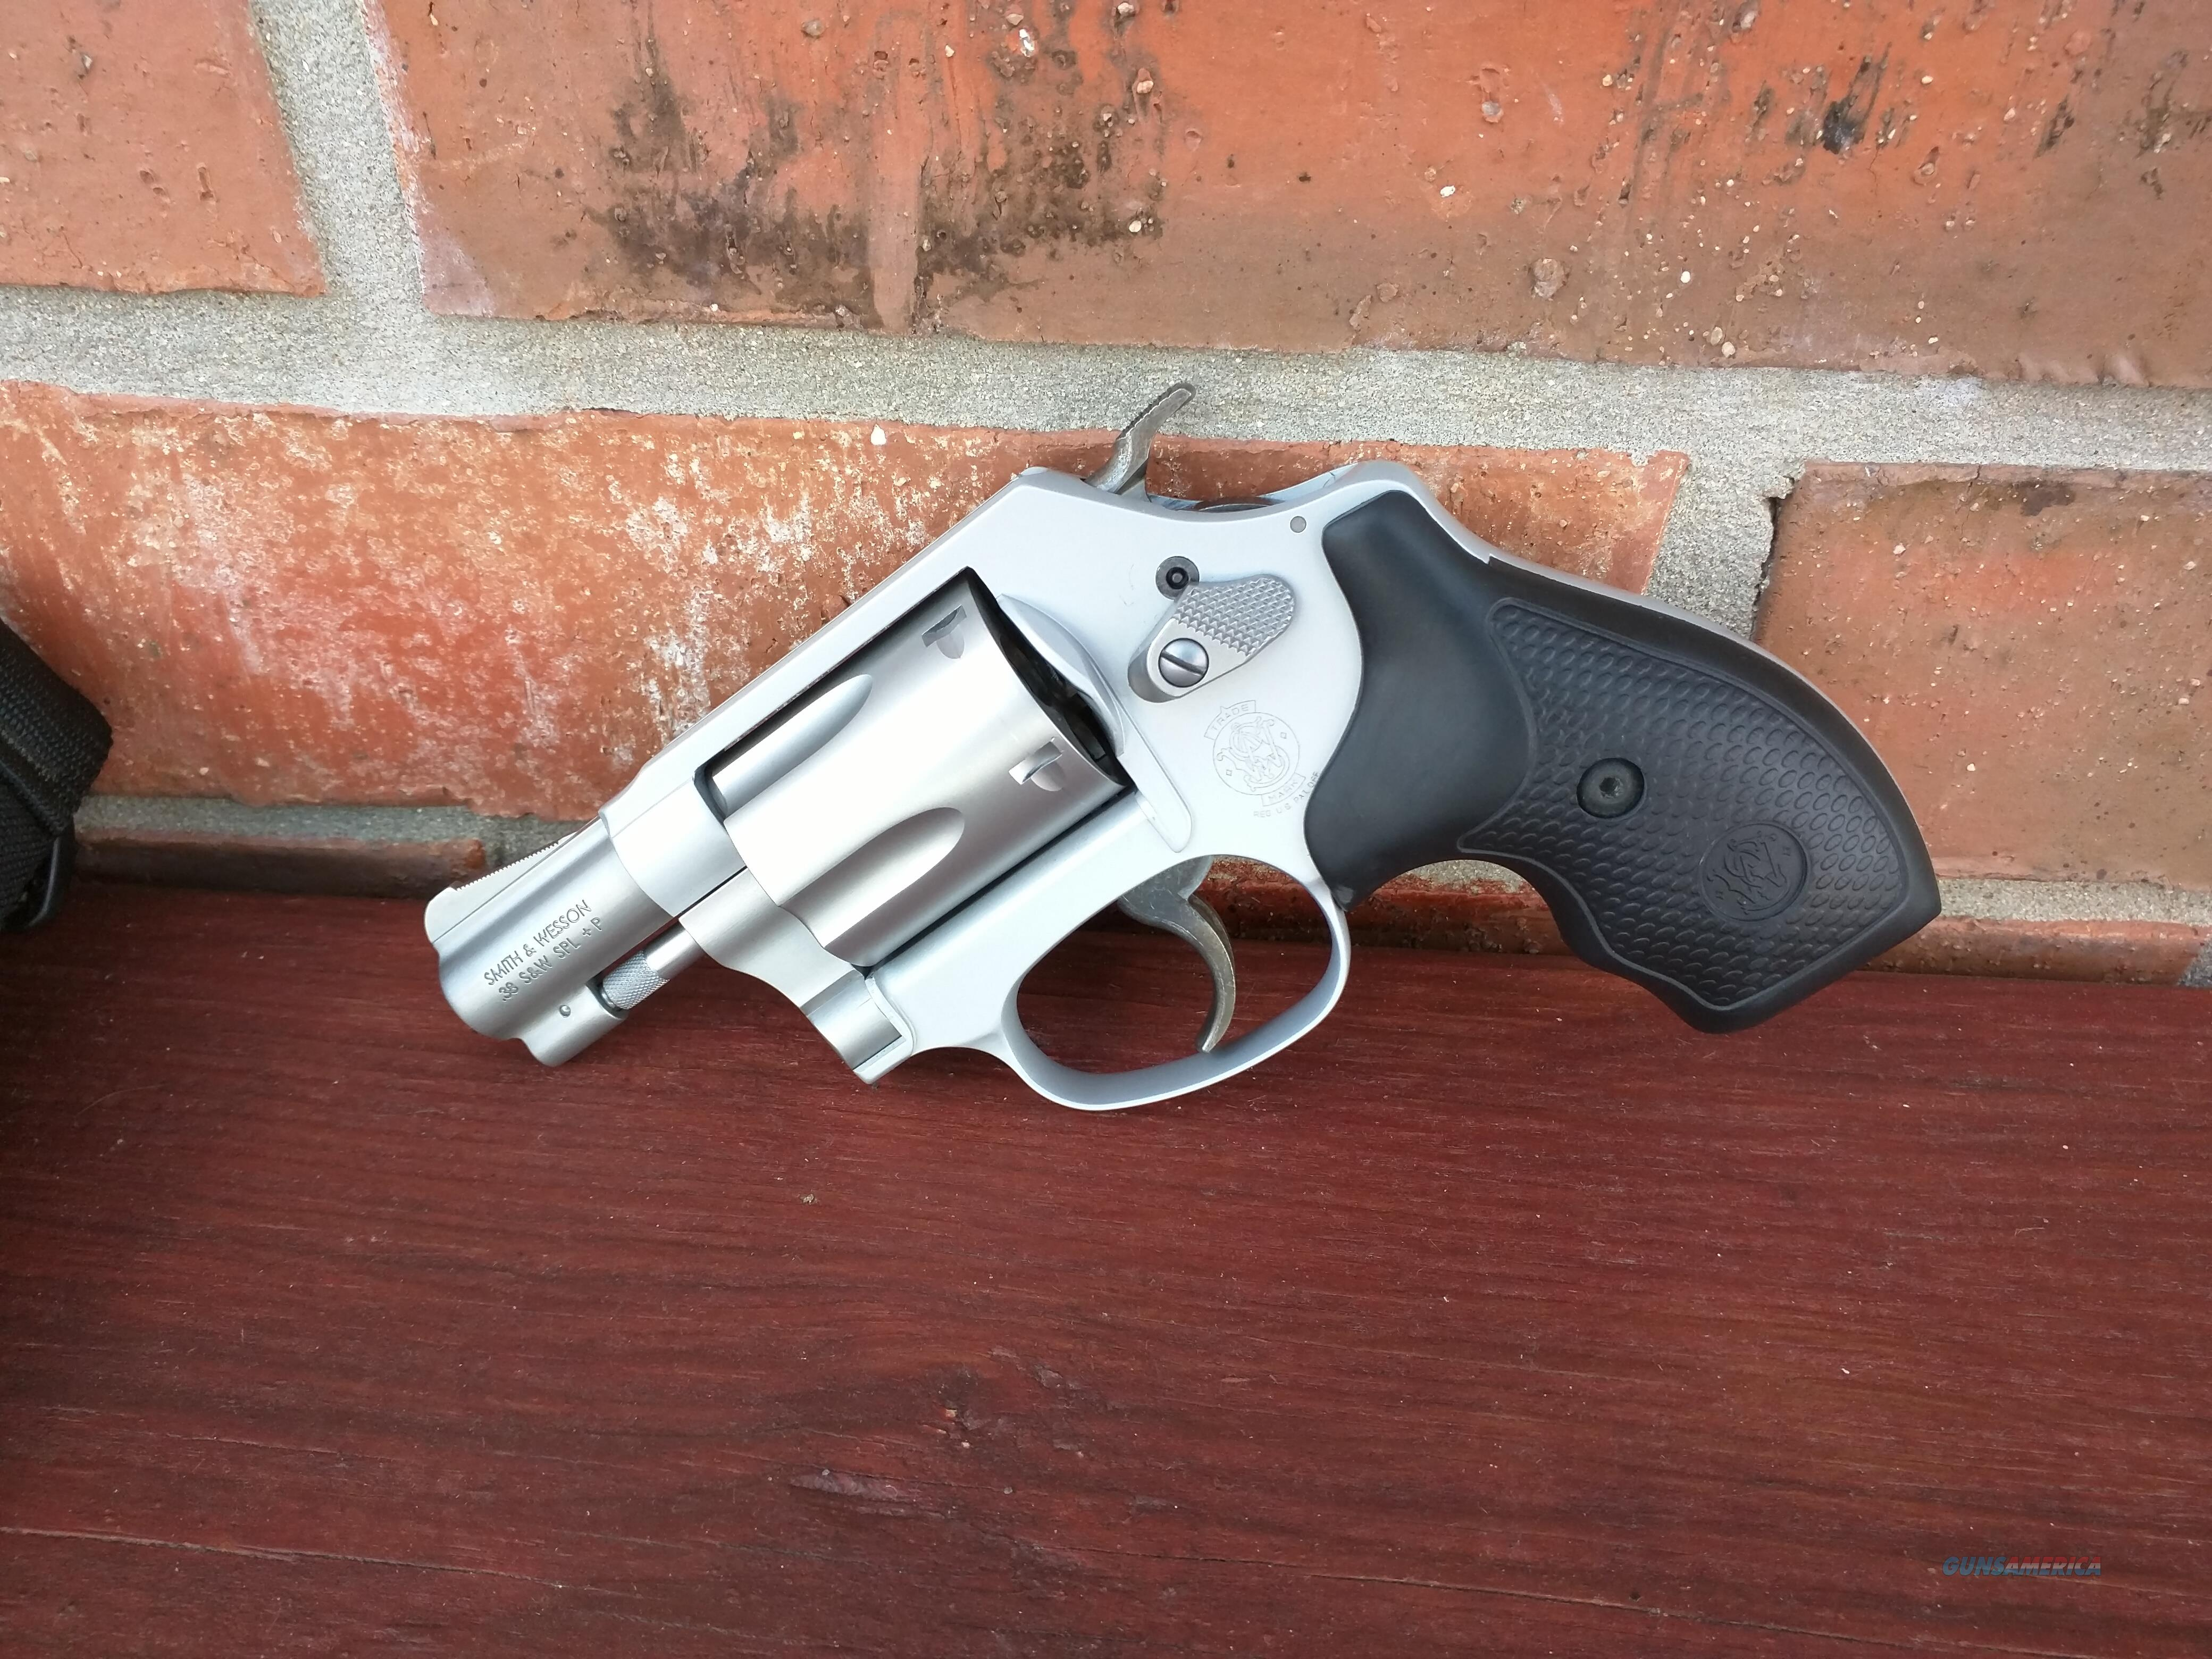 S&W Smith & Wesson 637-2 .38 Special, Airweight Revolver, 5 Shot   Guns > Pistols > Smith & Wesson Revolvers > Small Frame ( J )